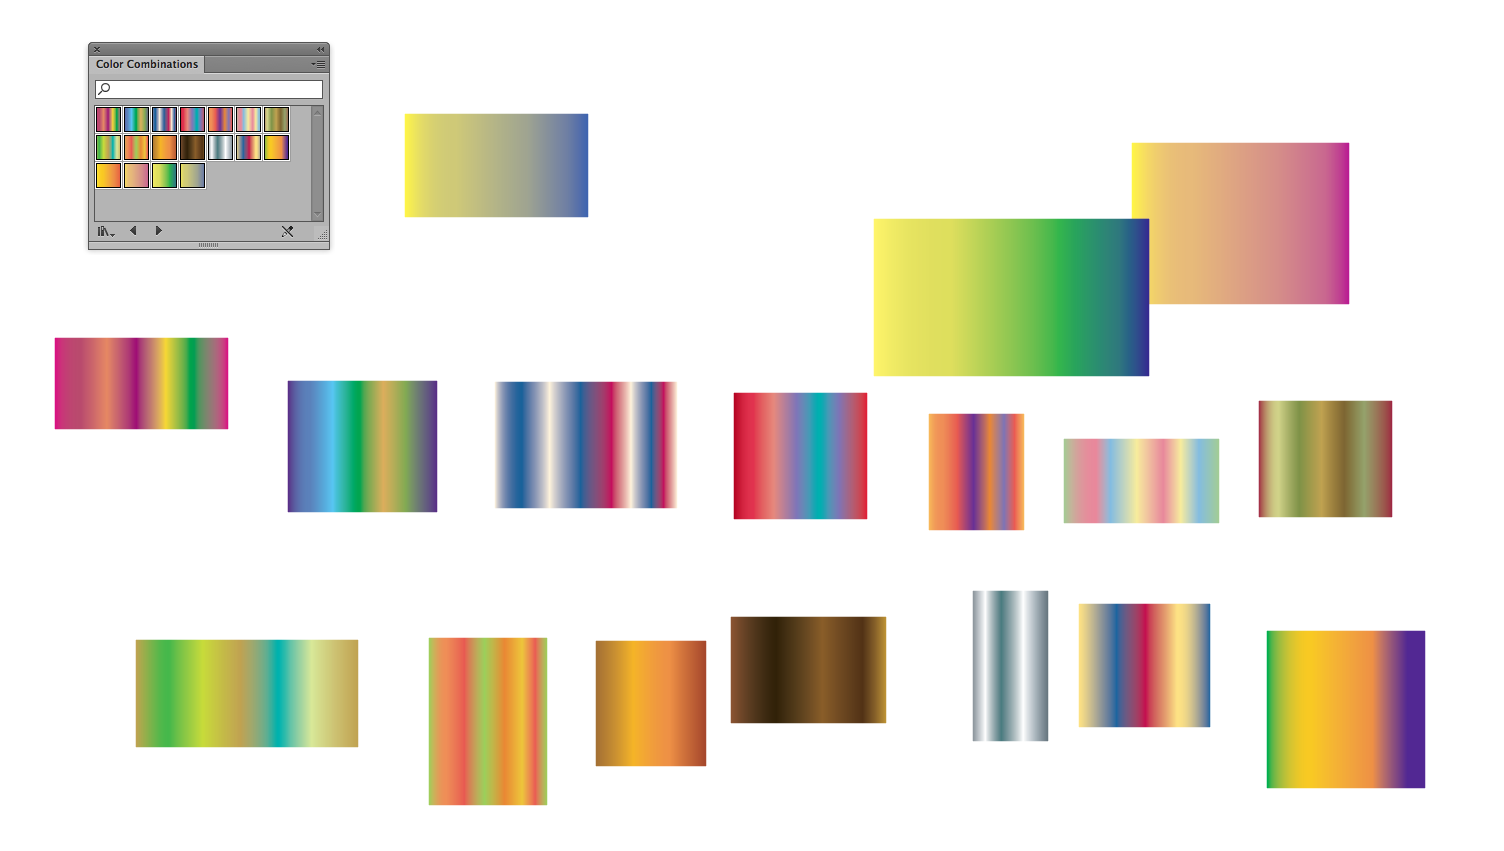 I Wanted All These Gradients, So I Made A Bunch Of Rectangles, And Applied  The Gradients Swatches To Them